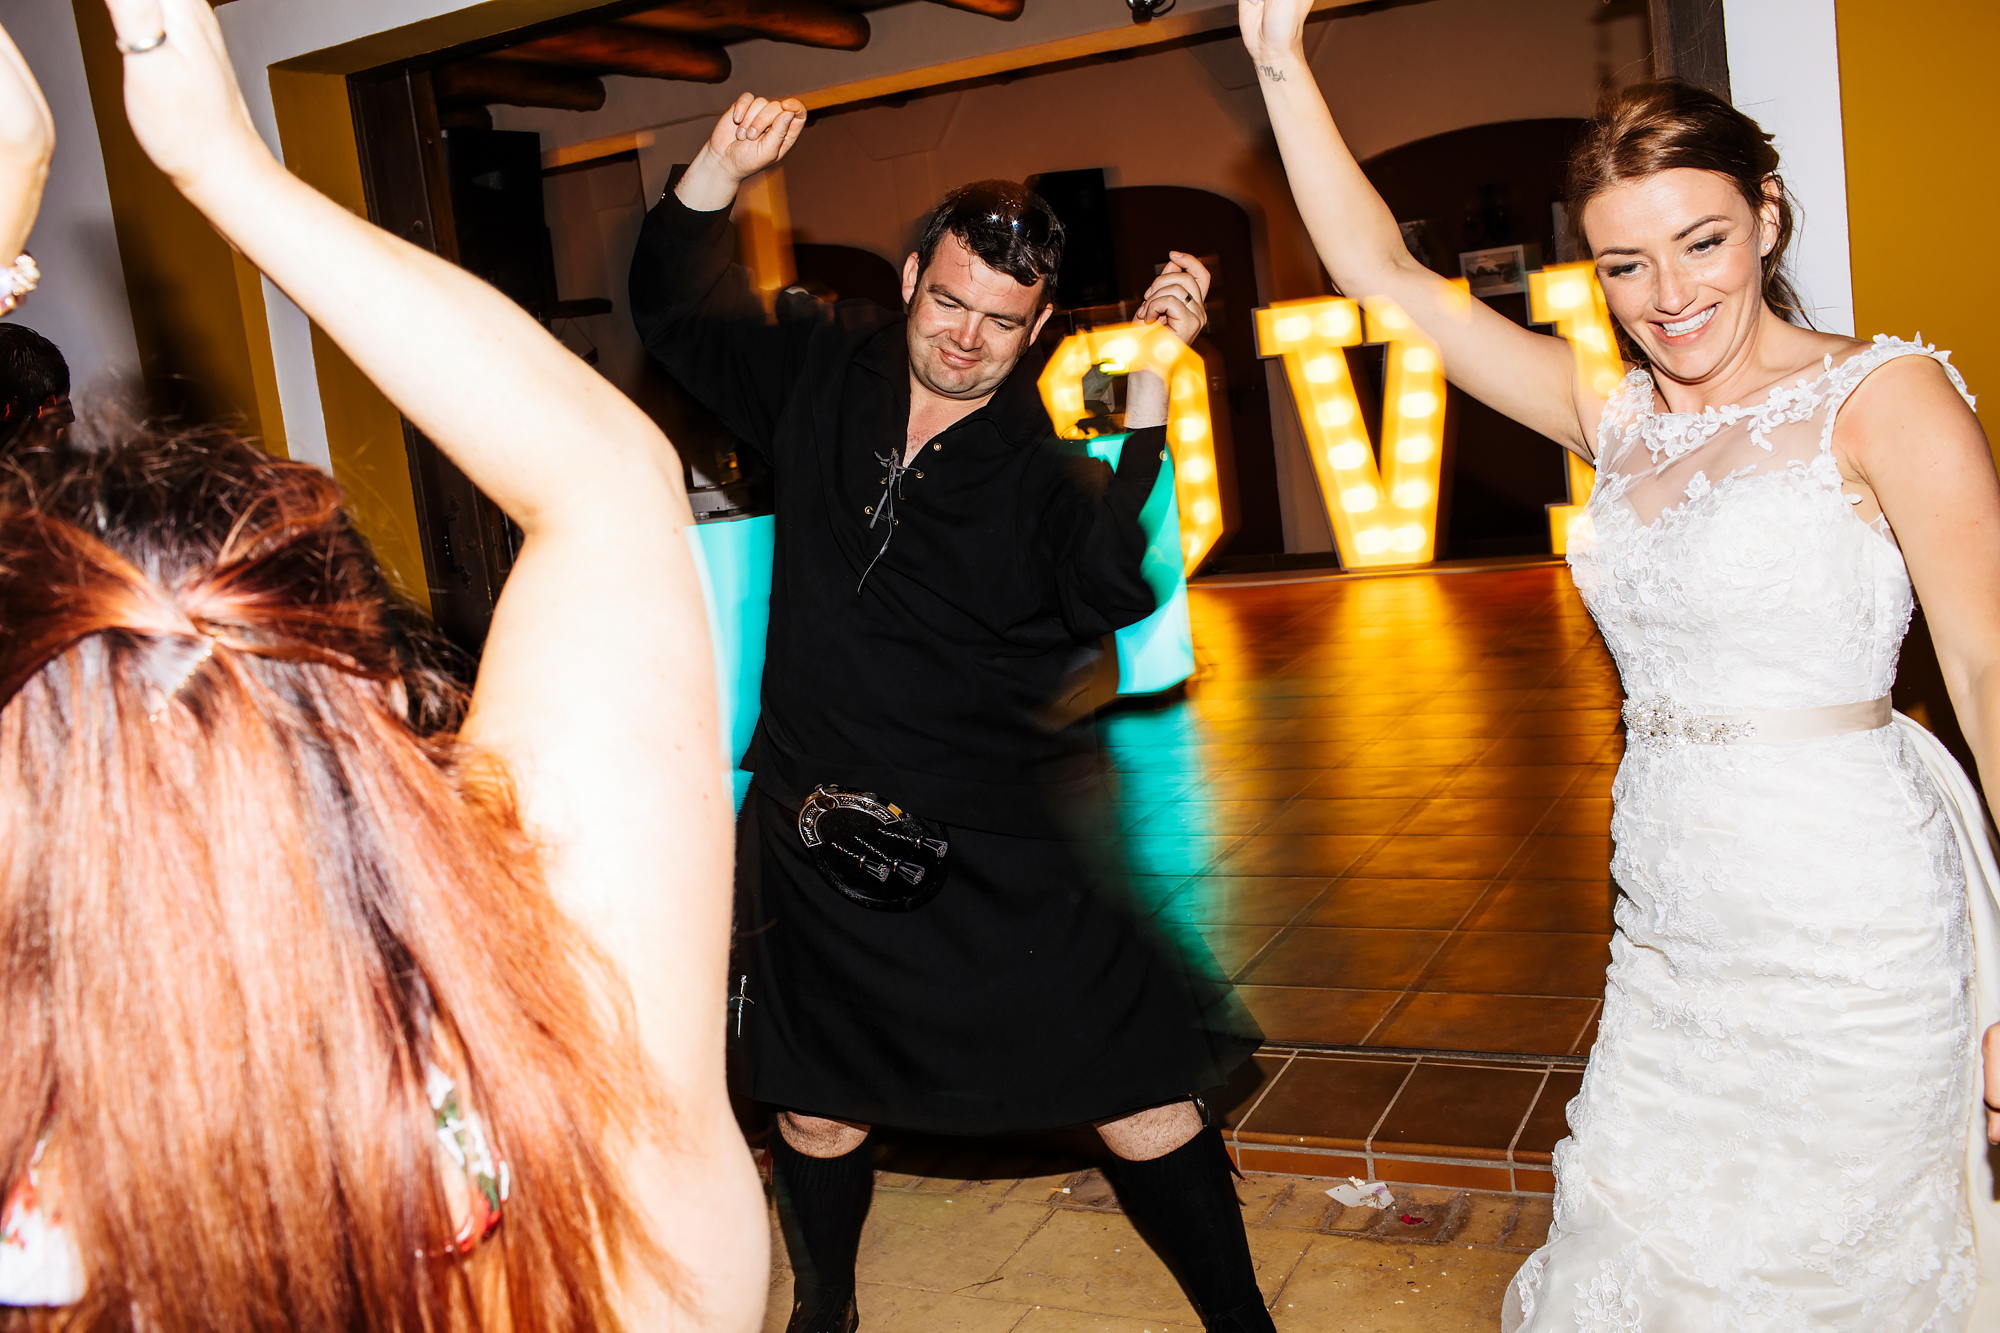 Wedding guests dancing in Costa Del Sol Spain